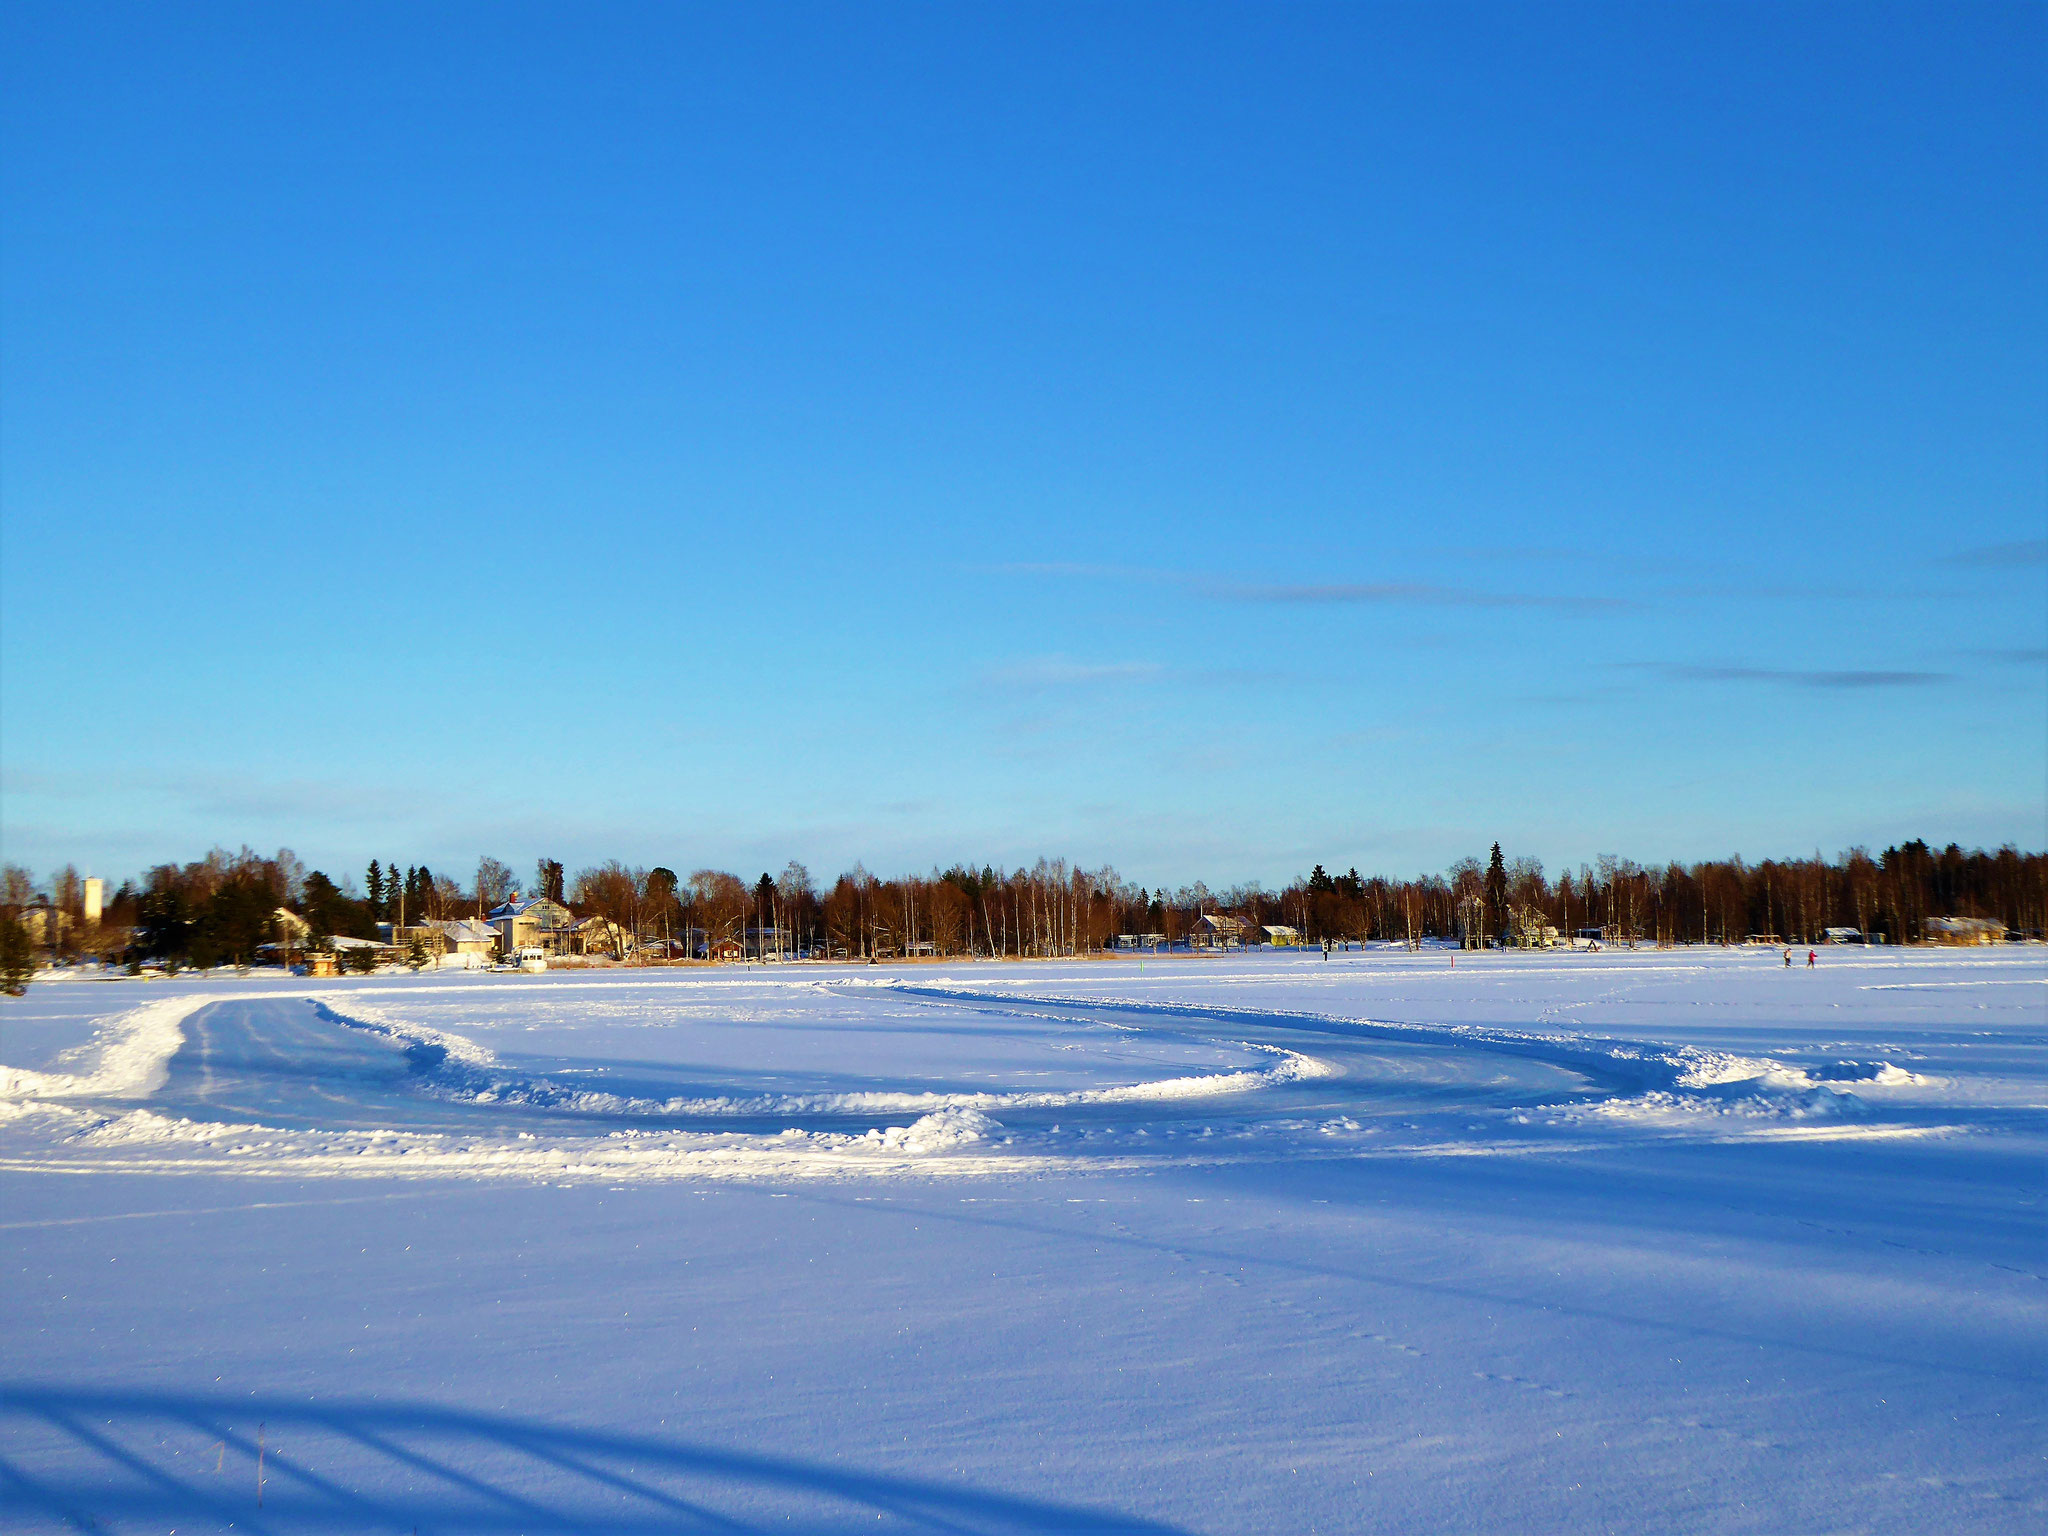 Free public scating at the ice rink. Bay at the town Sysmä, 9 km to the house (scates not included)